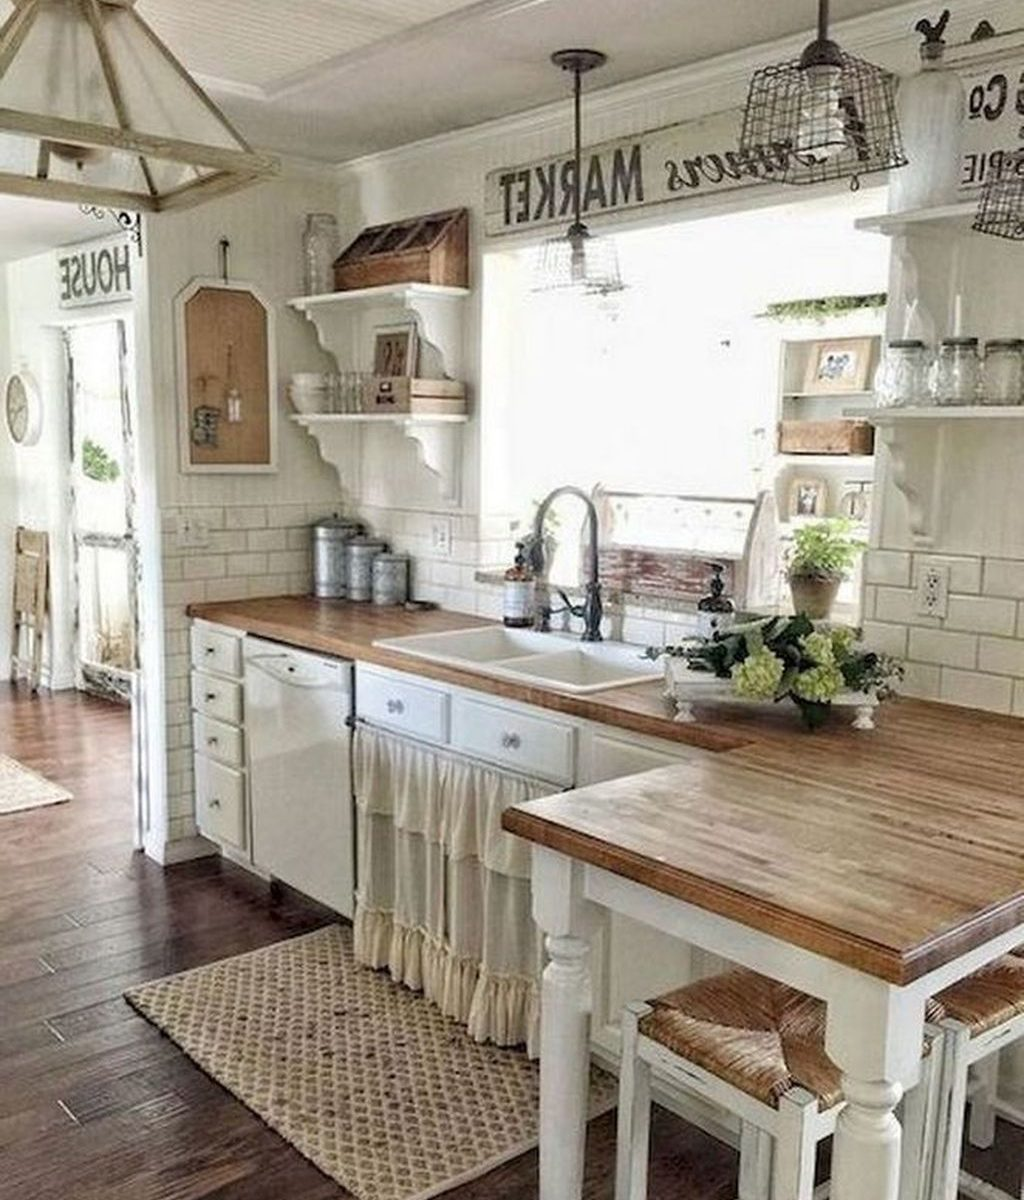 Inspiring Country Kitchen Decor Ideas You Should Copy 31